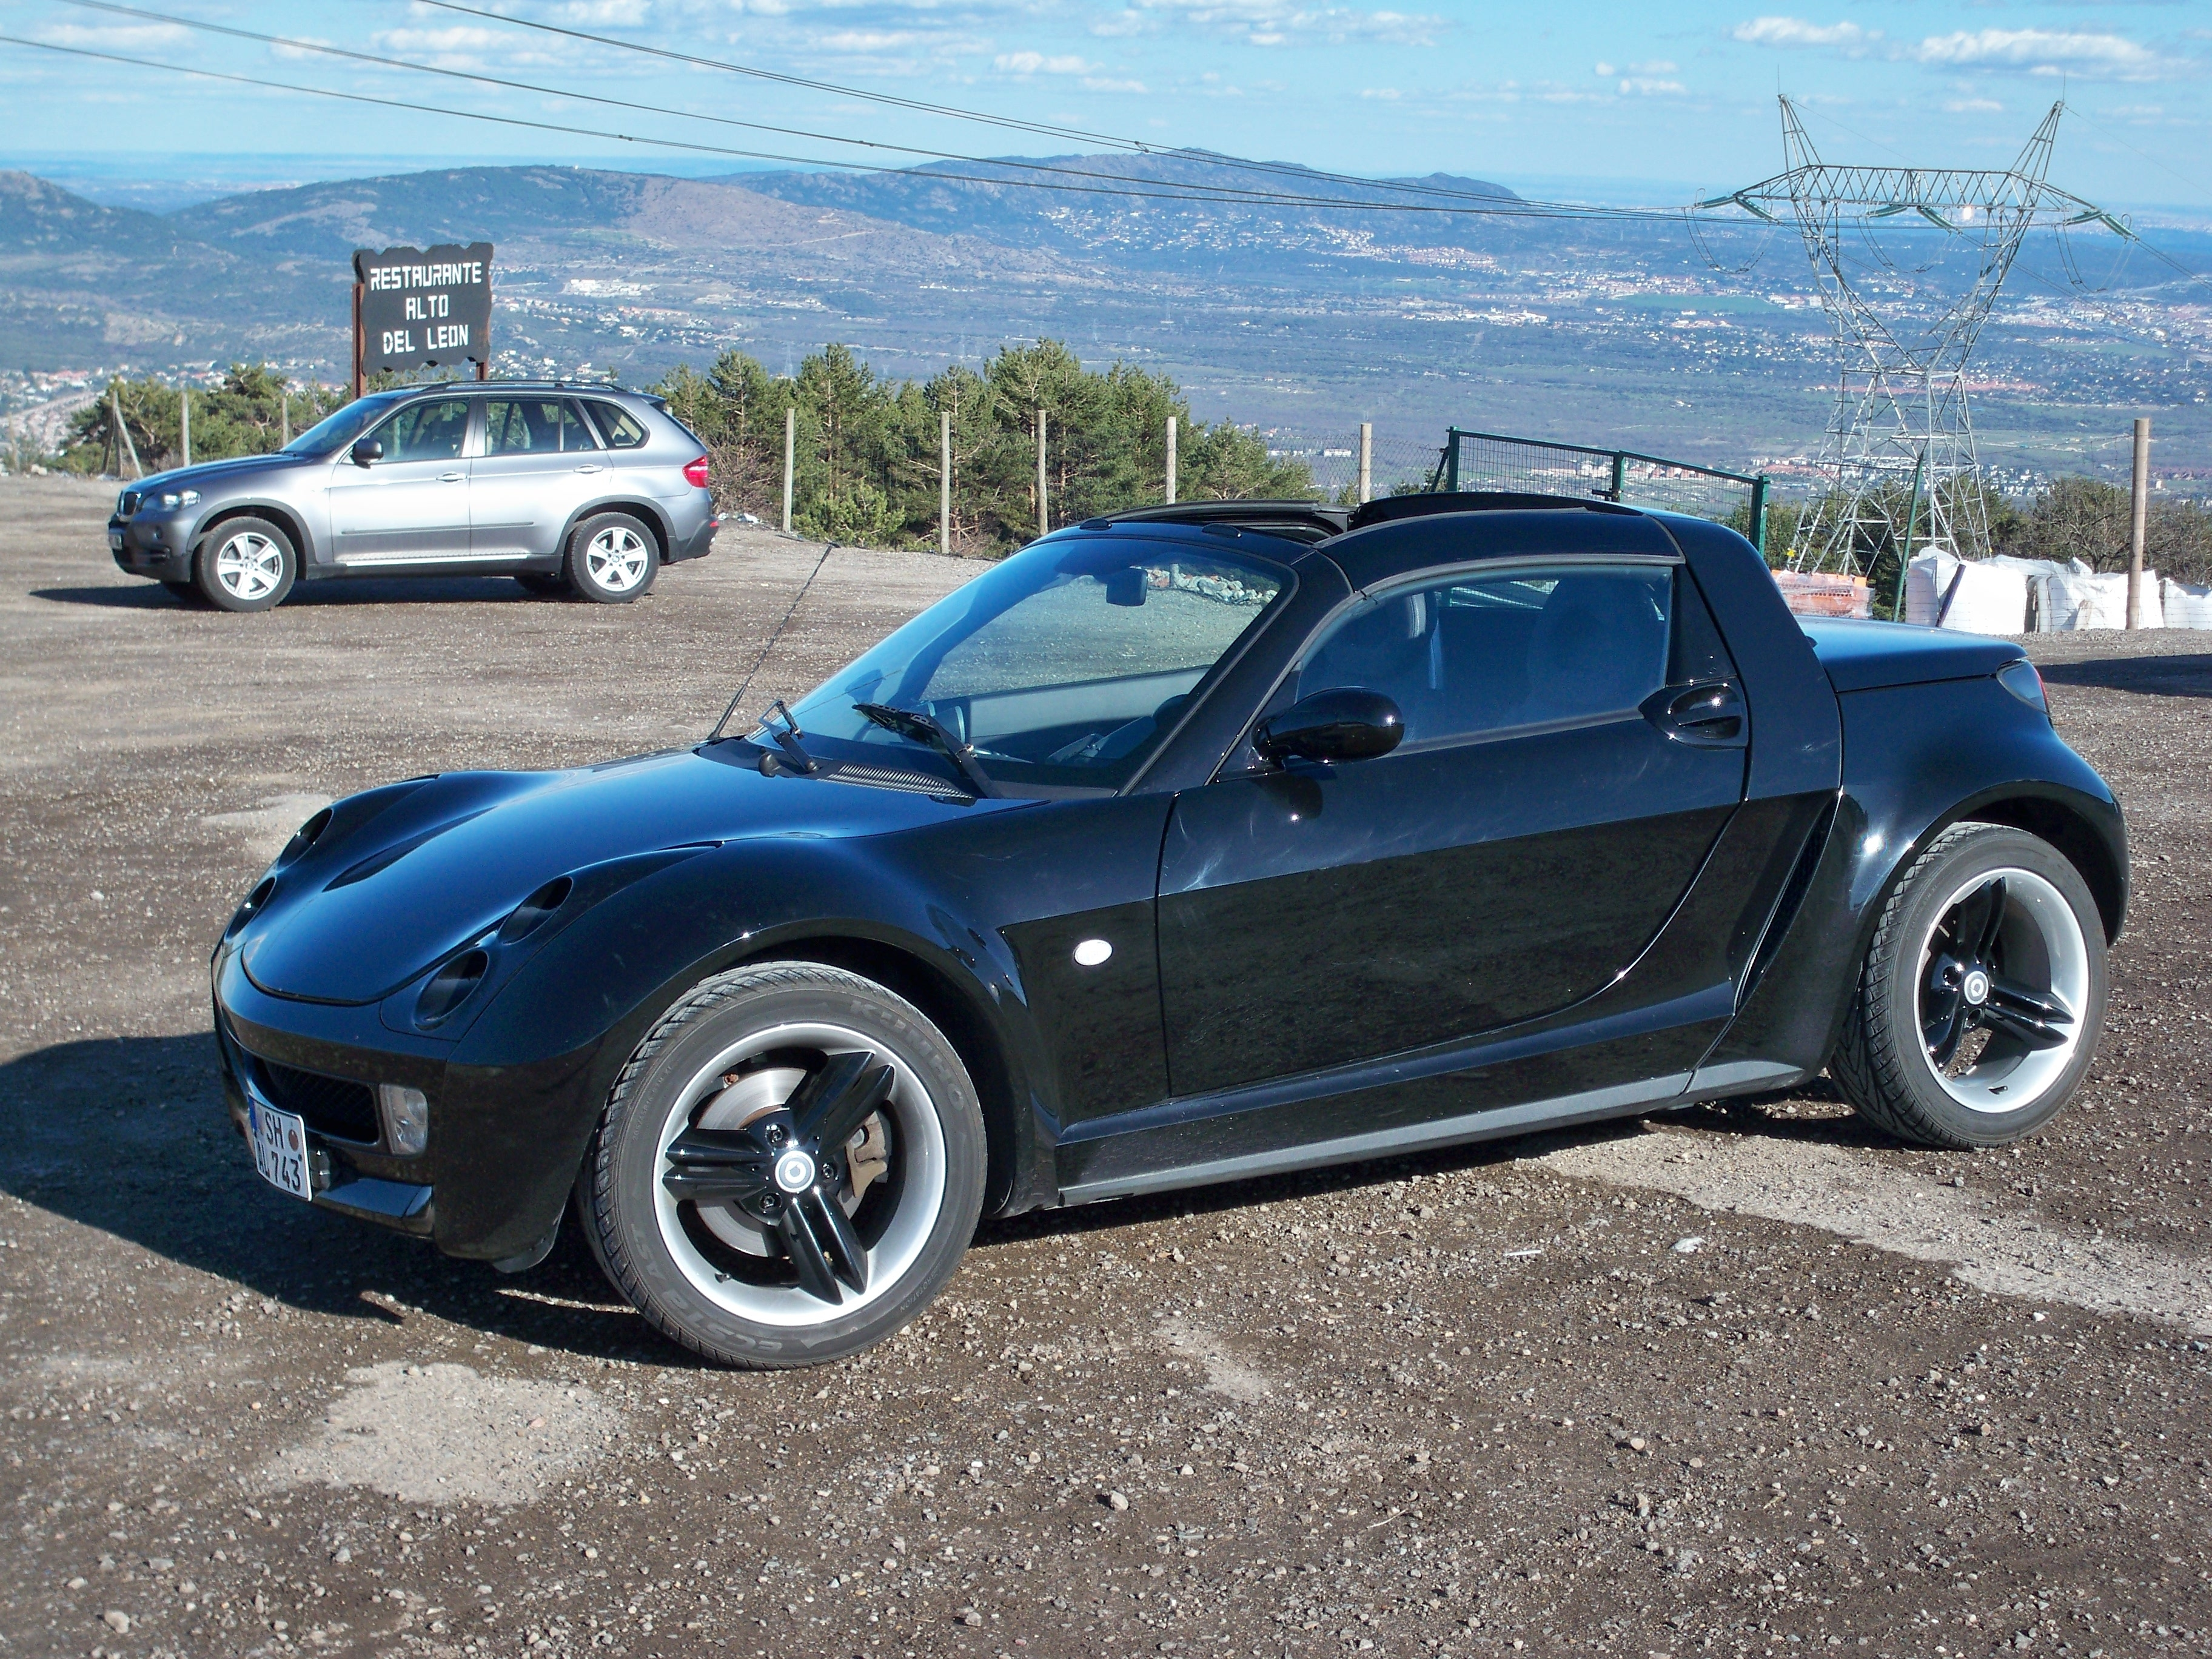 fiatspyder550 2003 smart roadster specs photos modification info at cardomain. Black Bedroom Furniture Sets. Home Design Ideas